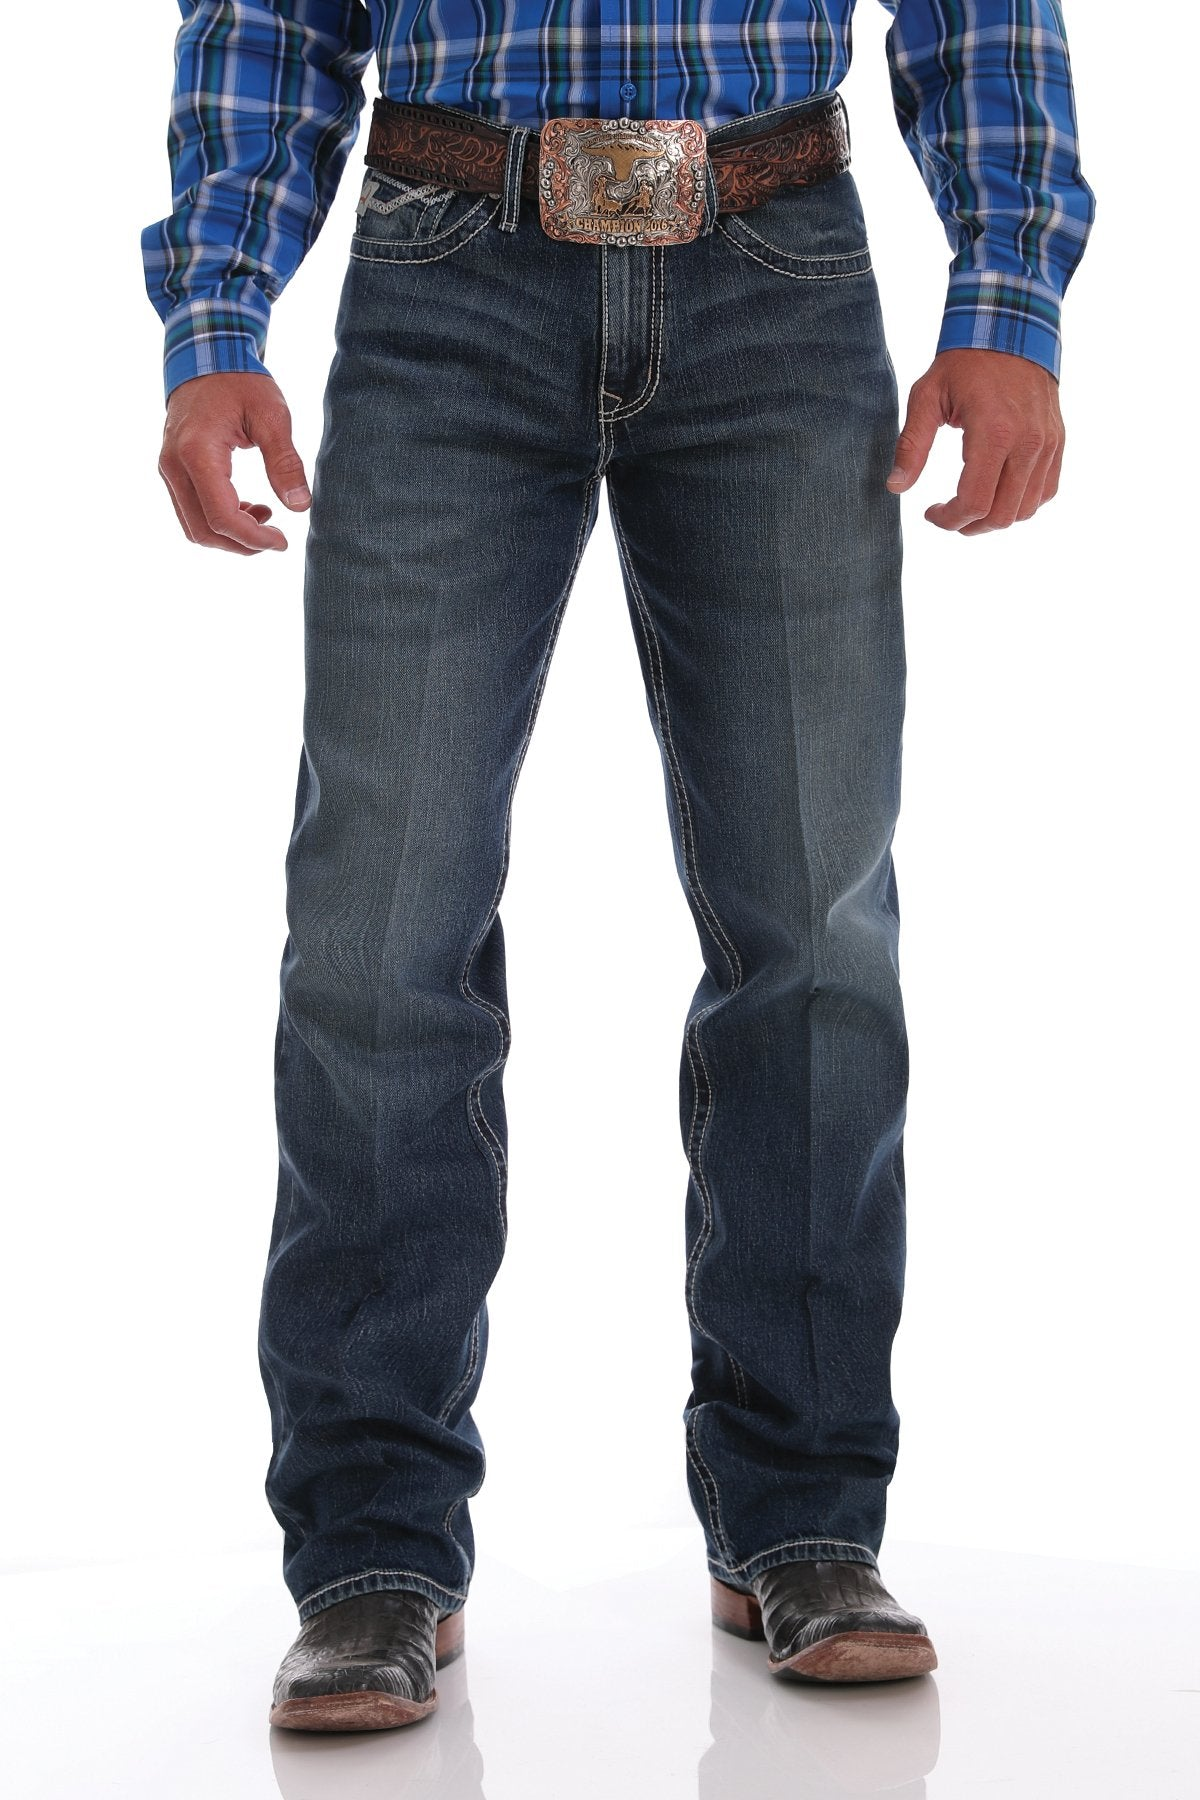 Cinch Grant Jeans